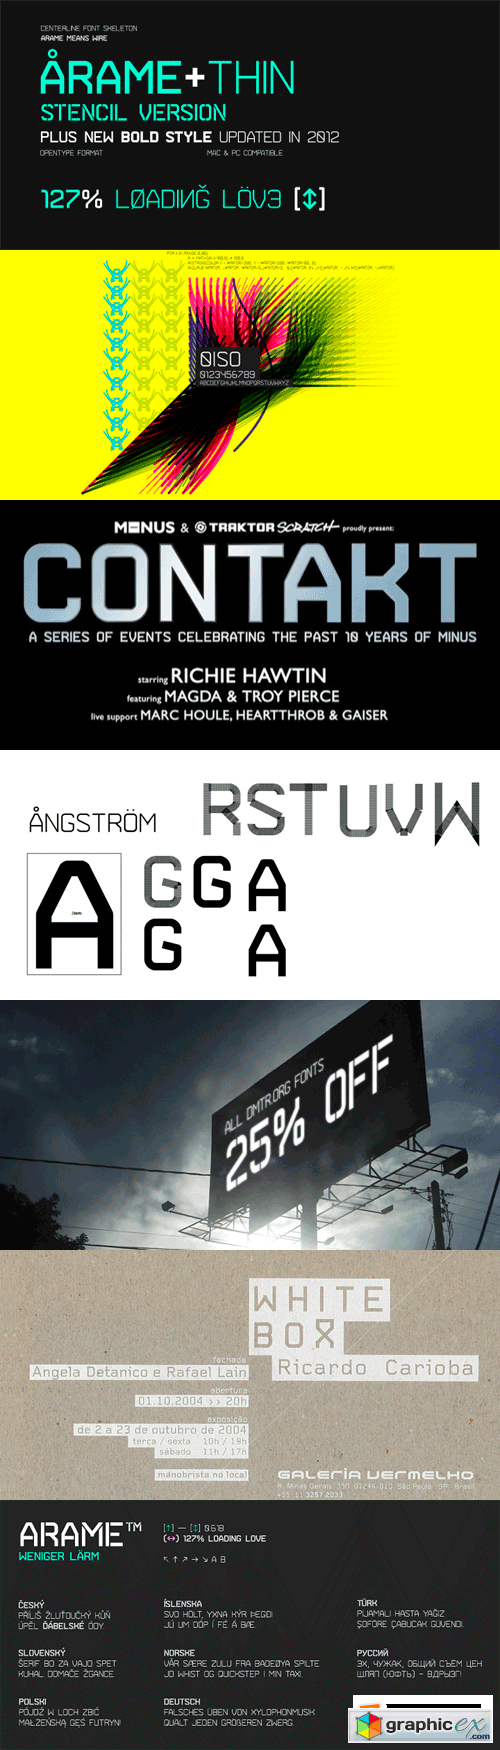 Arame Font Family - 8 Fonts for $160